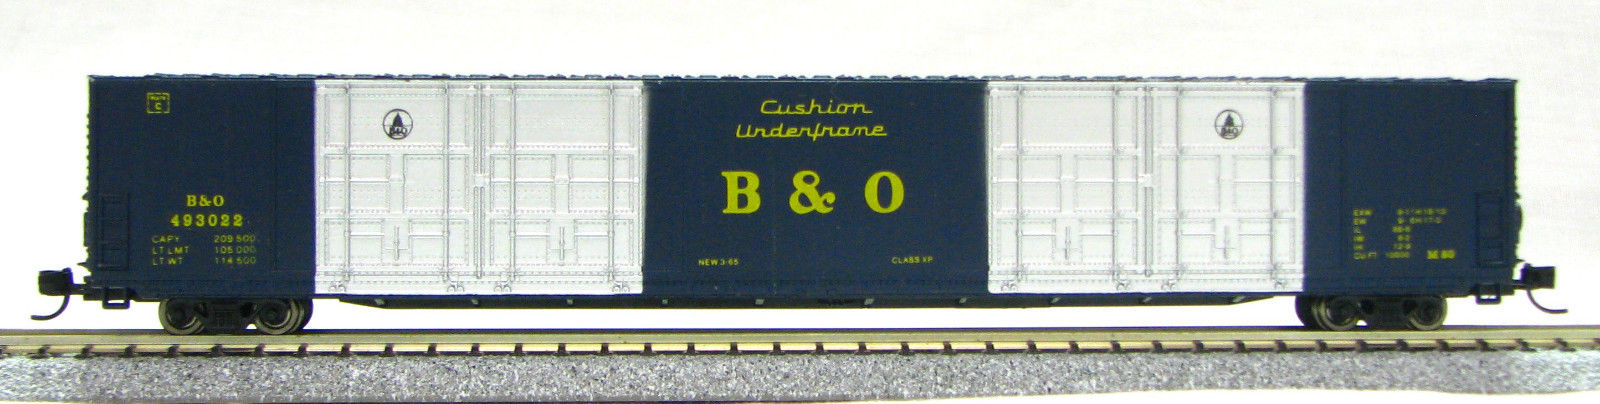 N Scale 8 Door 85 Ft Hi-Cube, B & O (with MT couplers) 01-014634